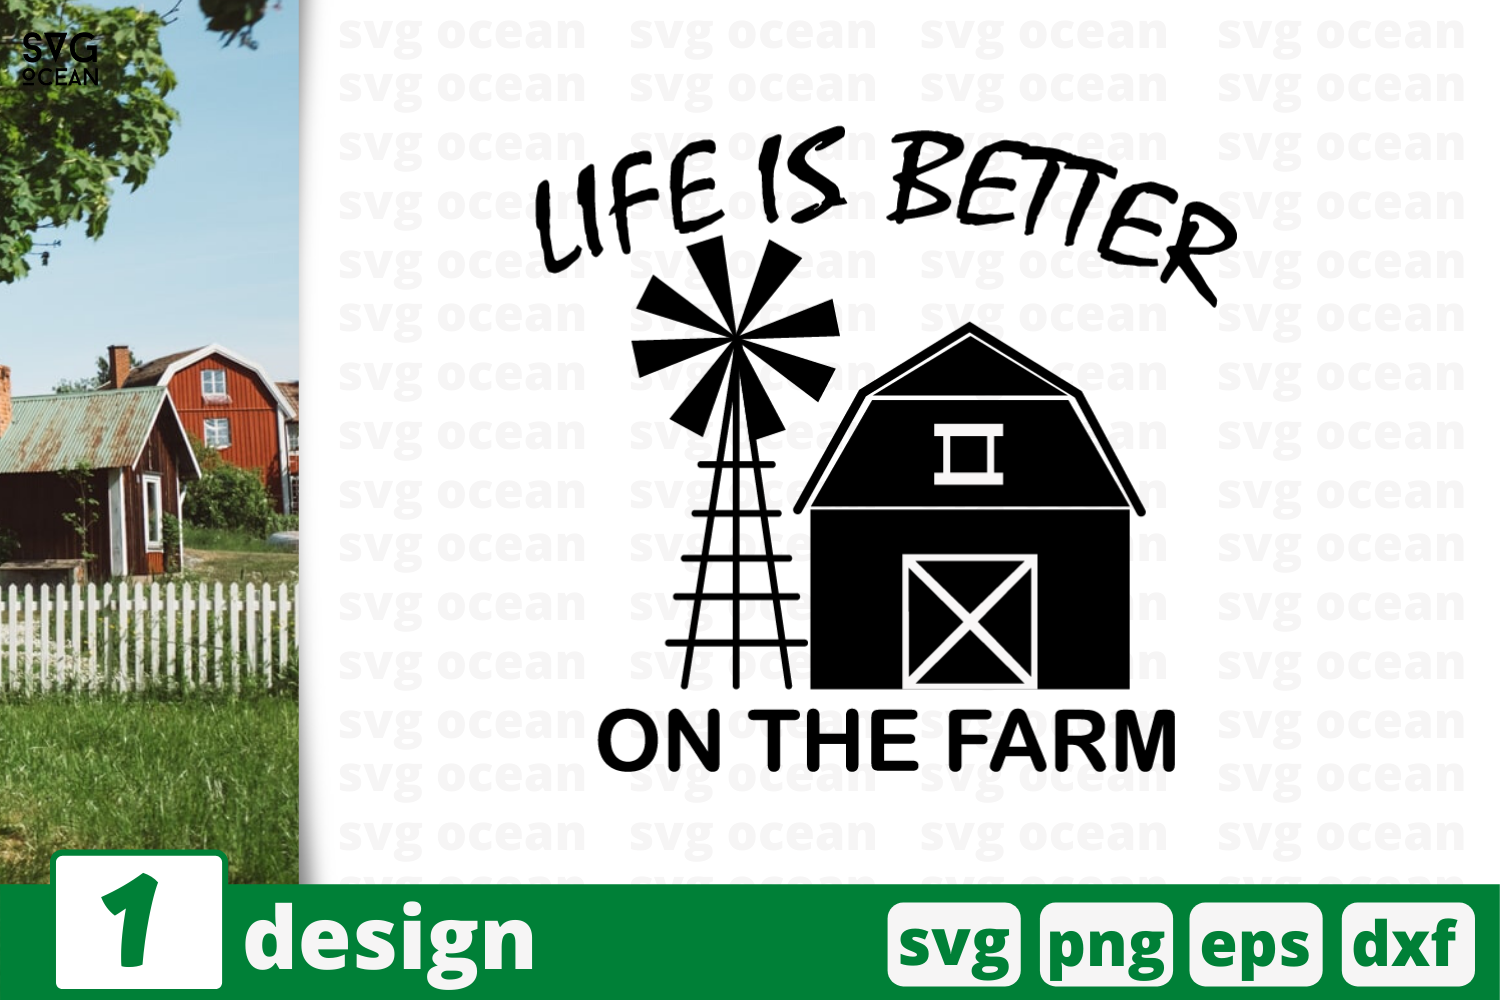 Download Free Life Is Better On The Farm Graphic By Svgocean Creative Fabrica for Cricut Explore, Silhouette and other cutting machines.